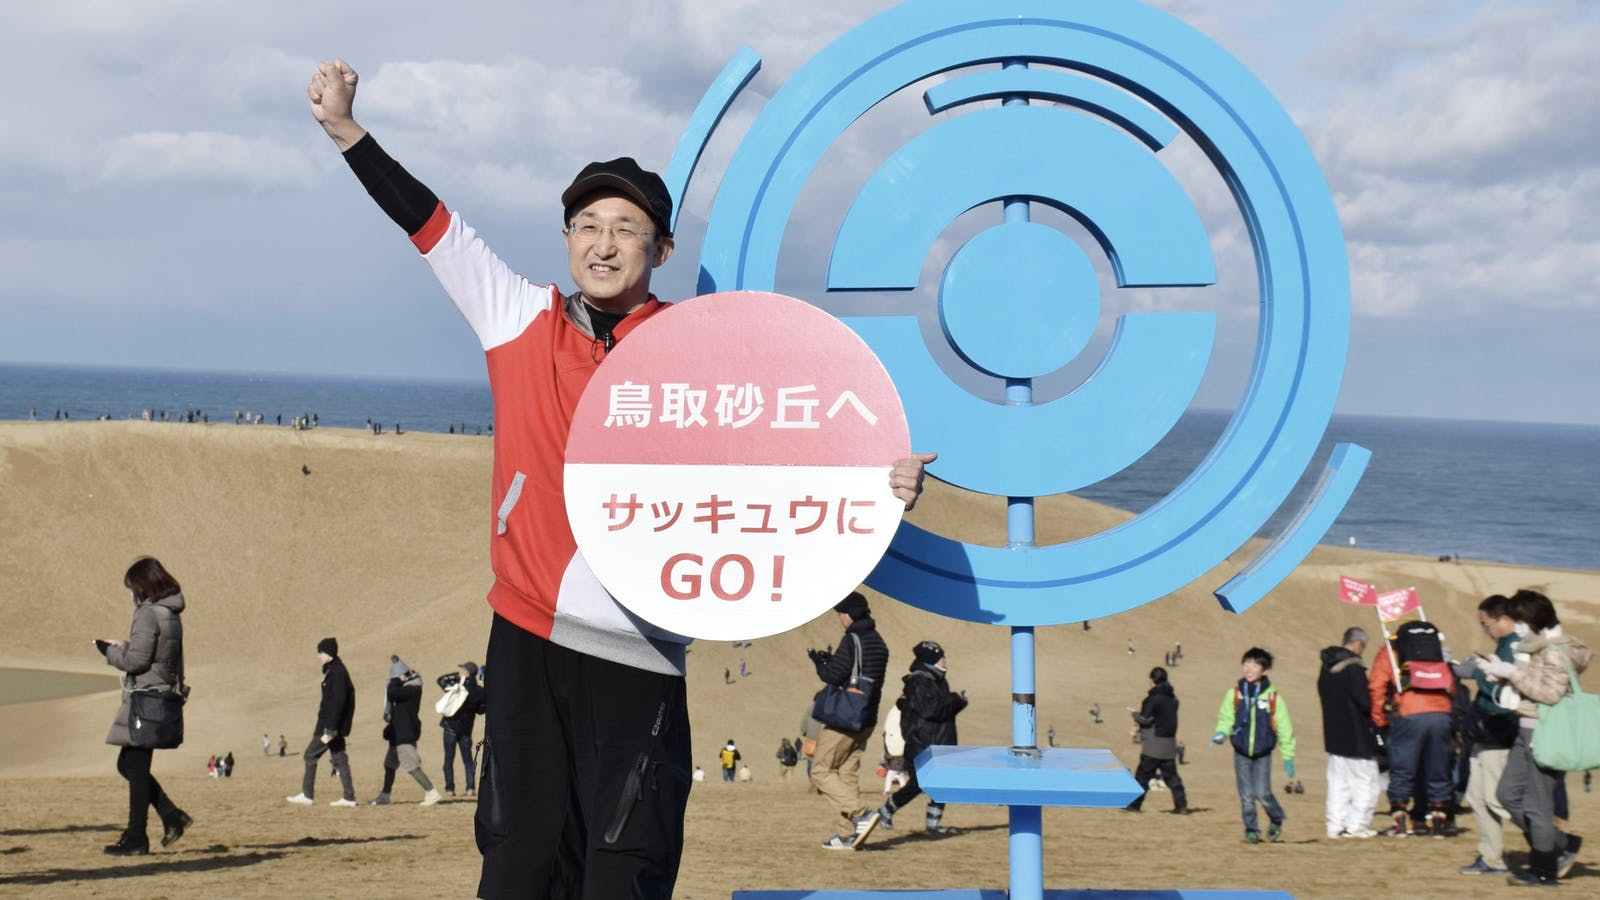 A Japanese politician at the opening ceremony for a three-day Pokemon Go event in Japan in 2017. Photo by AP